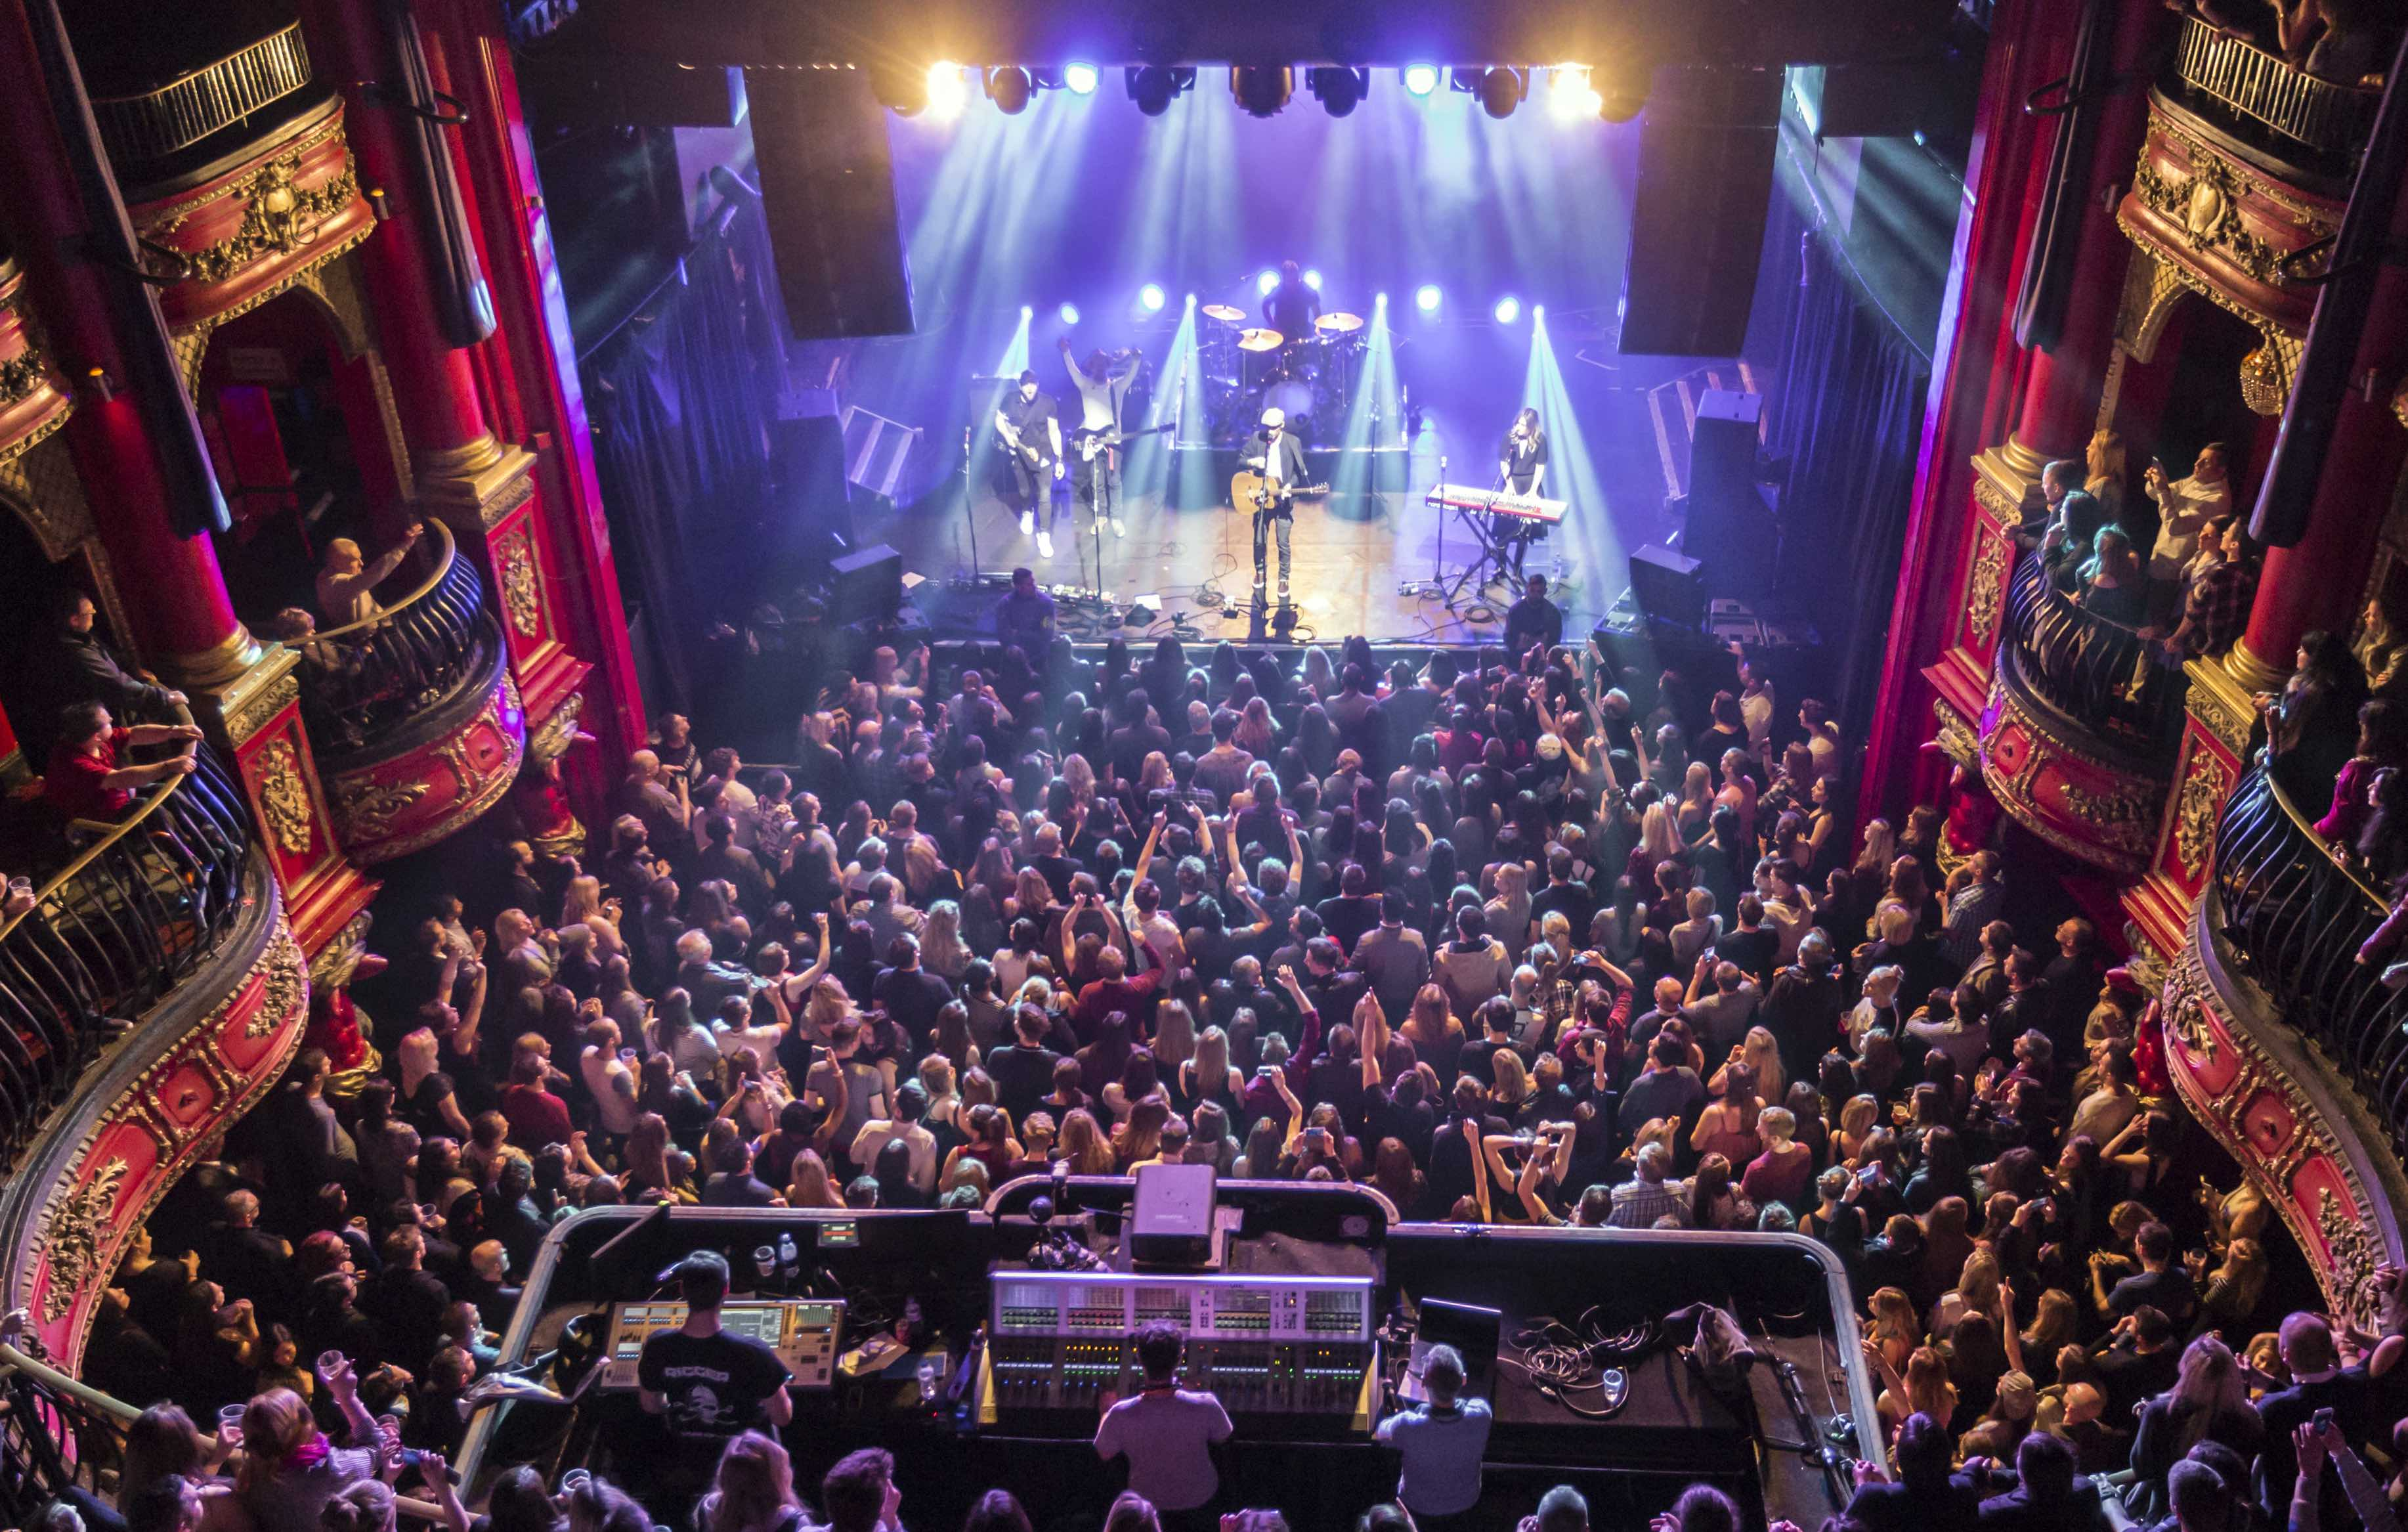 Avolites Arena Busks Beautifully at KOKO London